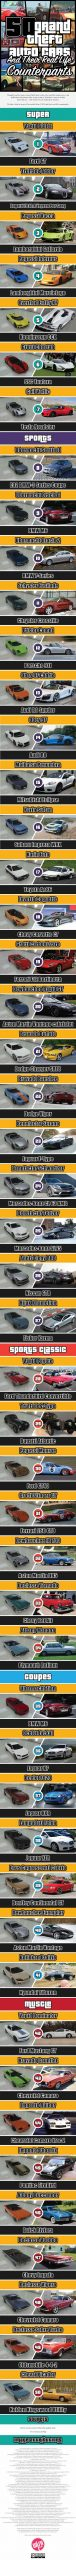 50 GTA Car Infographic